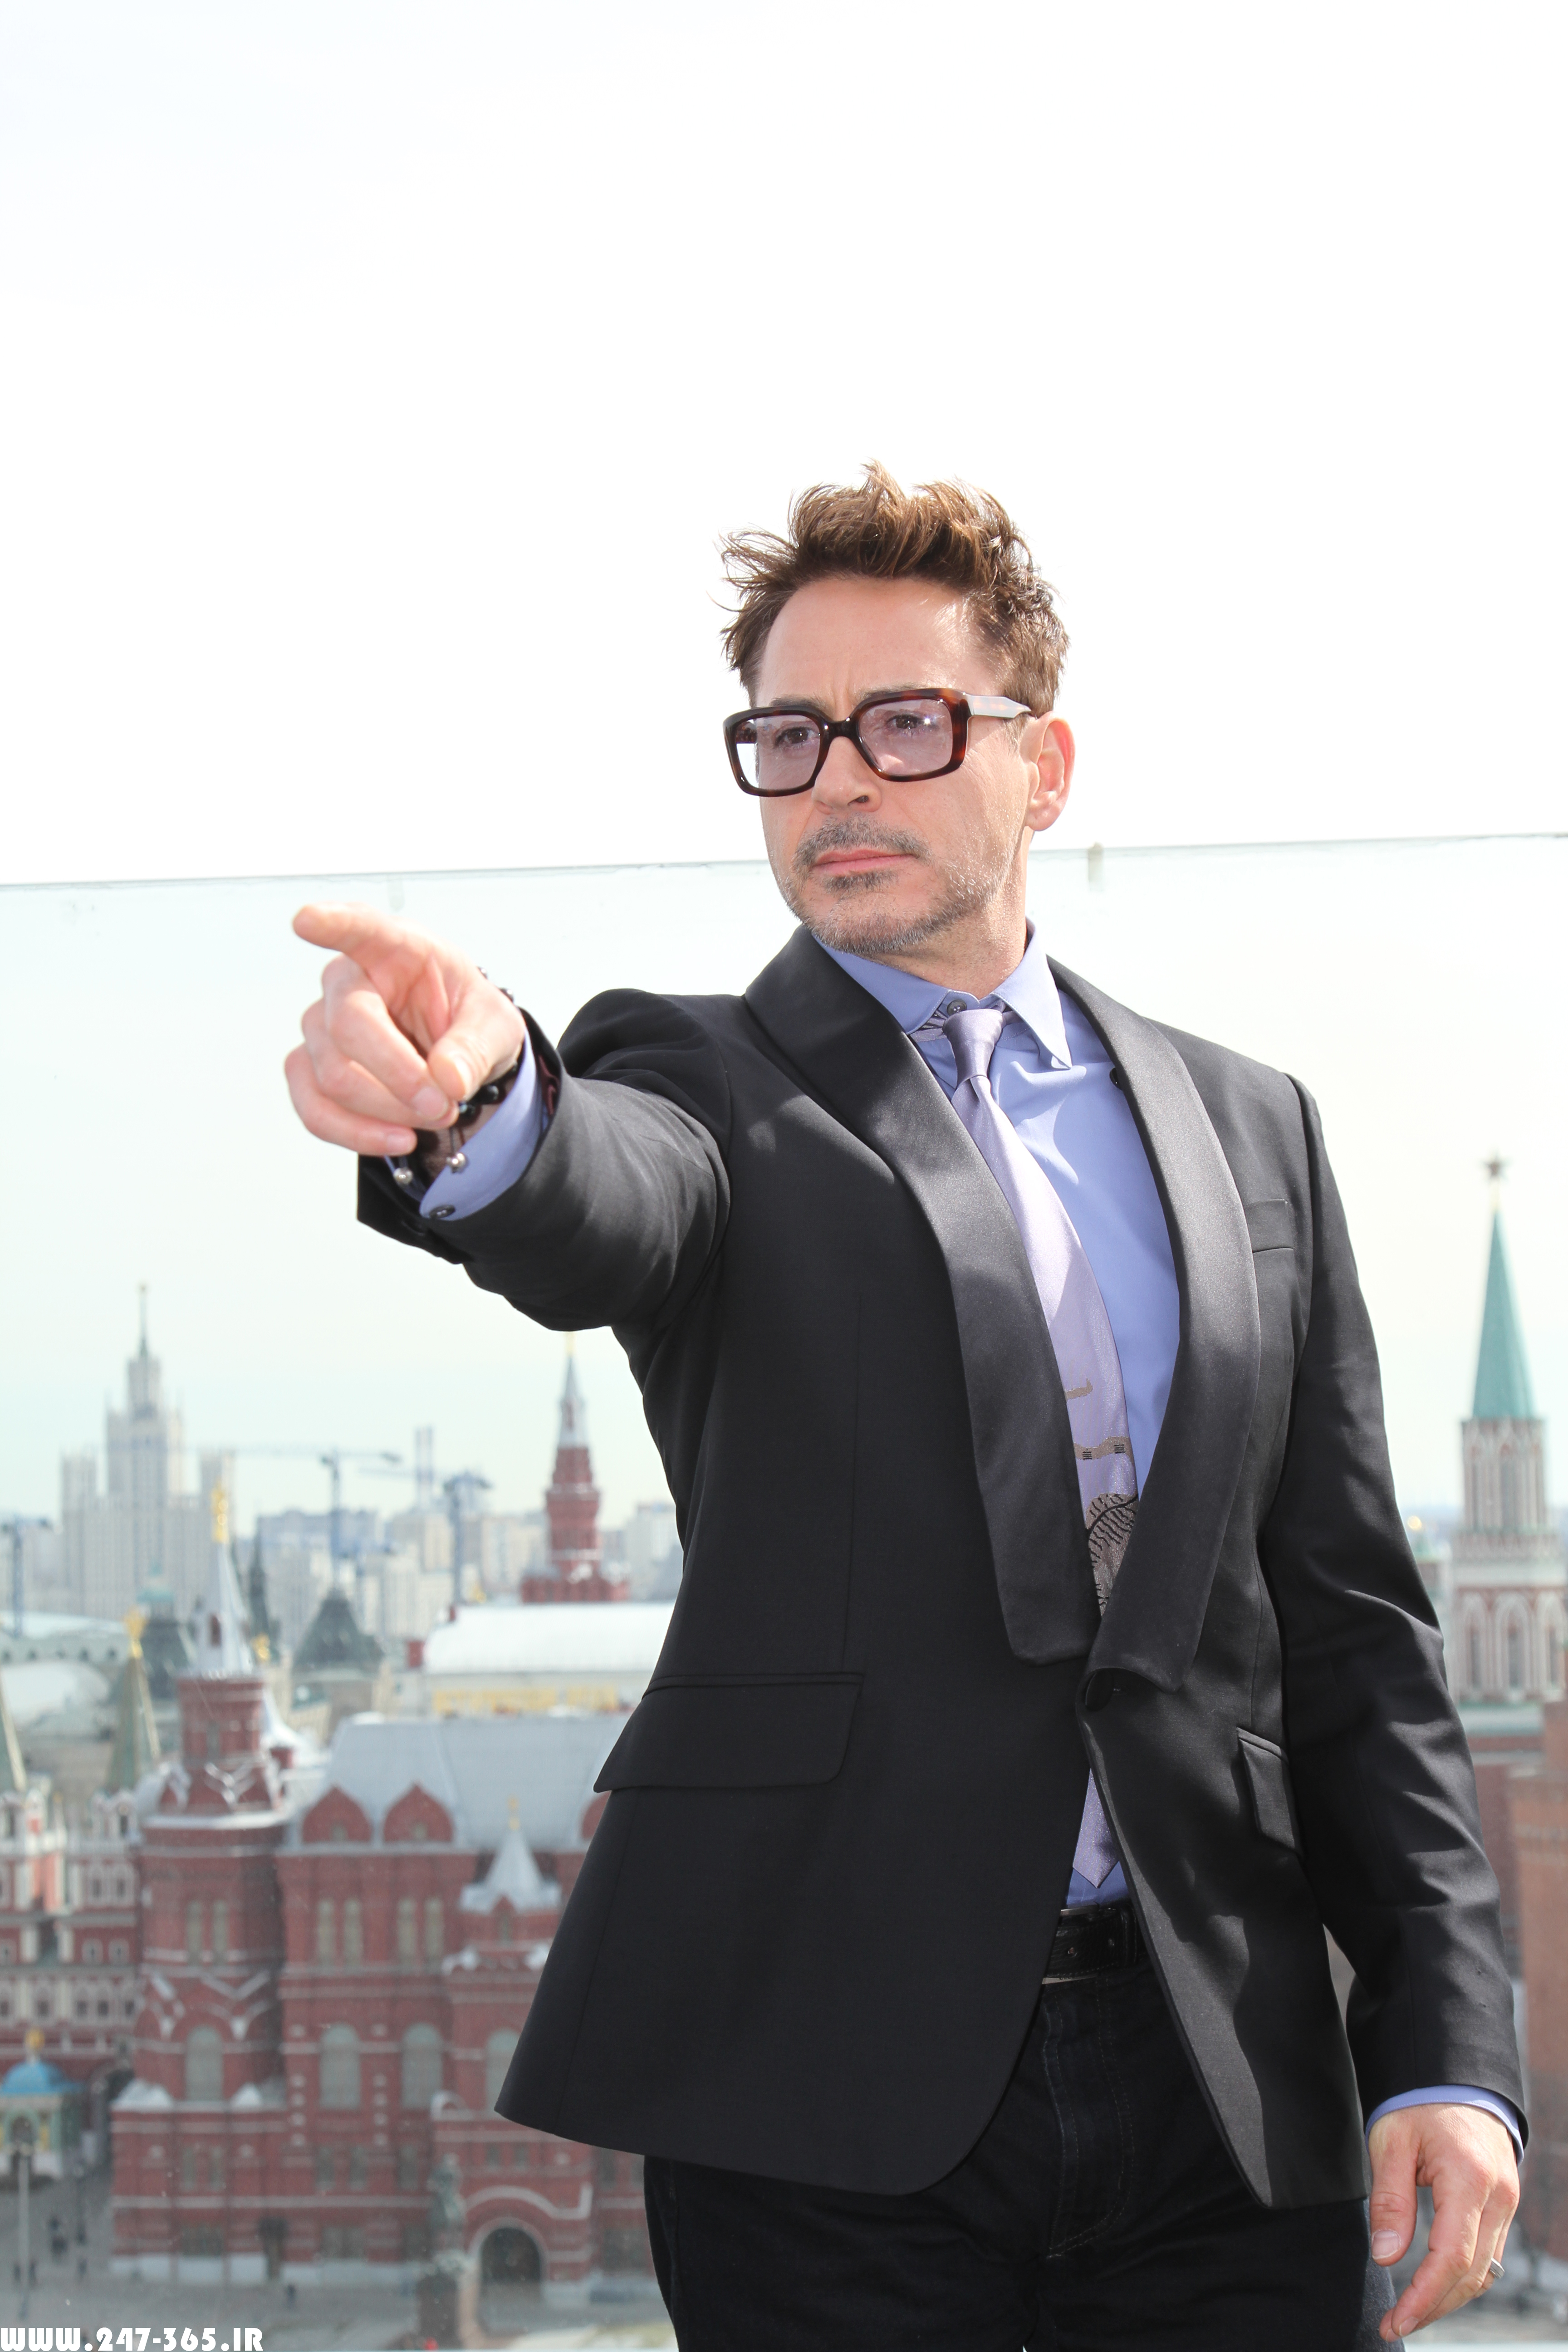 http://dl.247-365.ir/pic/celebrity/robert_downey_jr_3/Robert_Downey_Jr_3_10.jpg